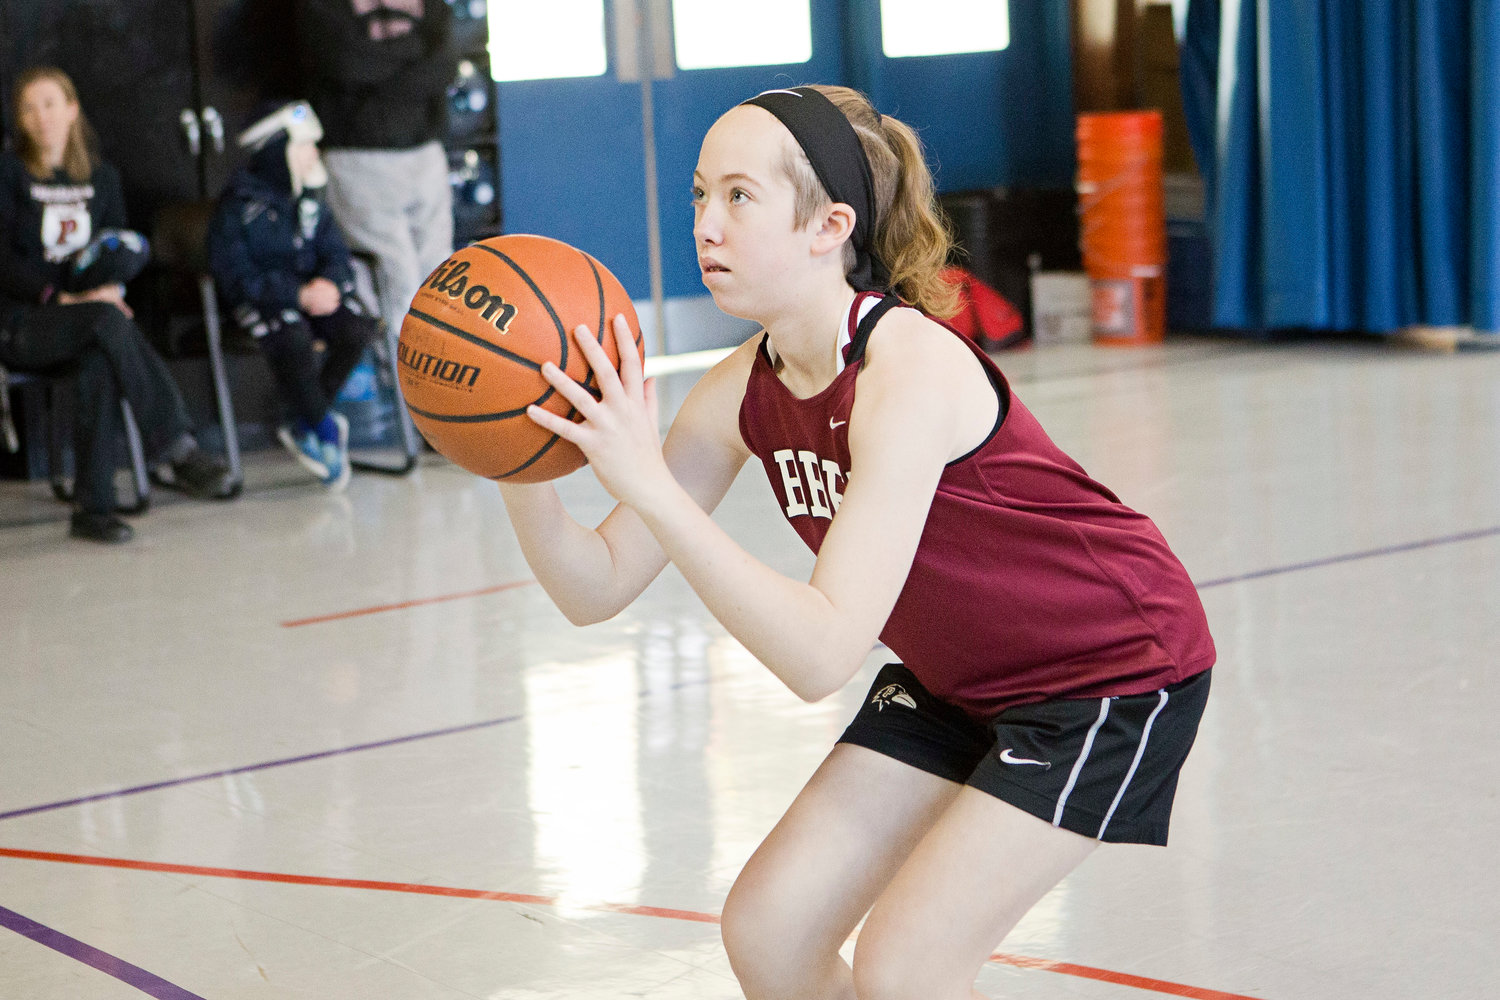 Bailey Howell, 13, takes steady aim while competing in a qualifying round of the Knights of Columbus' free throw contest in the Bradley School gymnasium in Portsmouth in January. Bailey advanced to the State Championships, where on March 24 she was a perfect 25-for-25 to win it all.